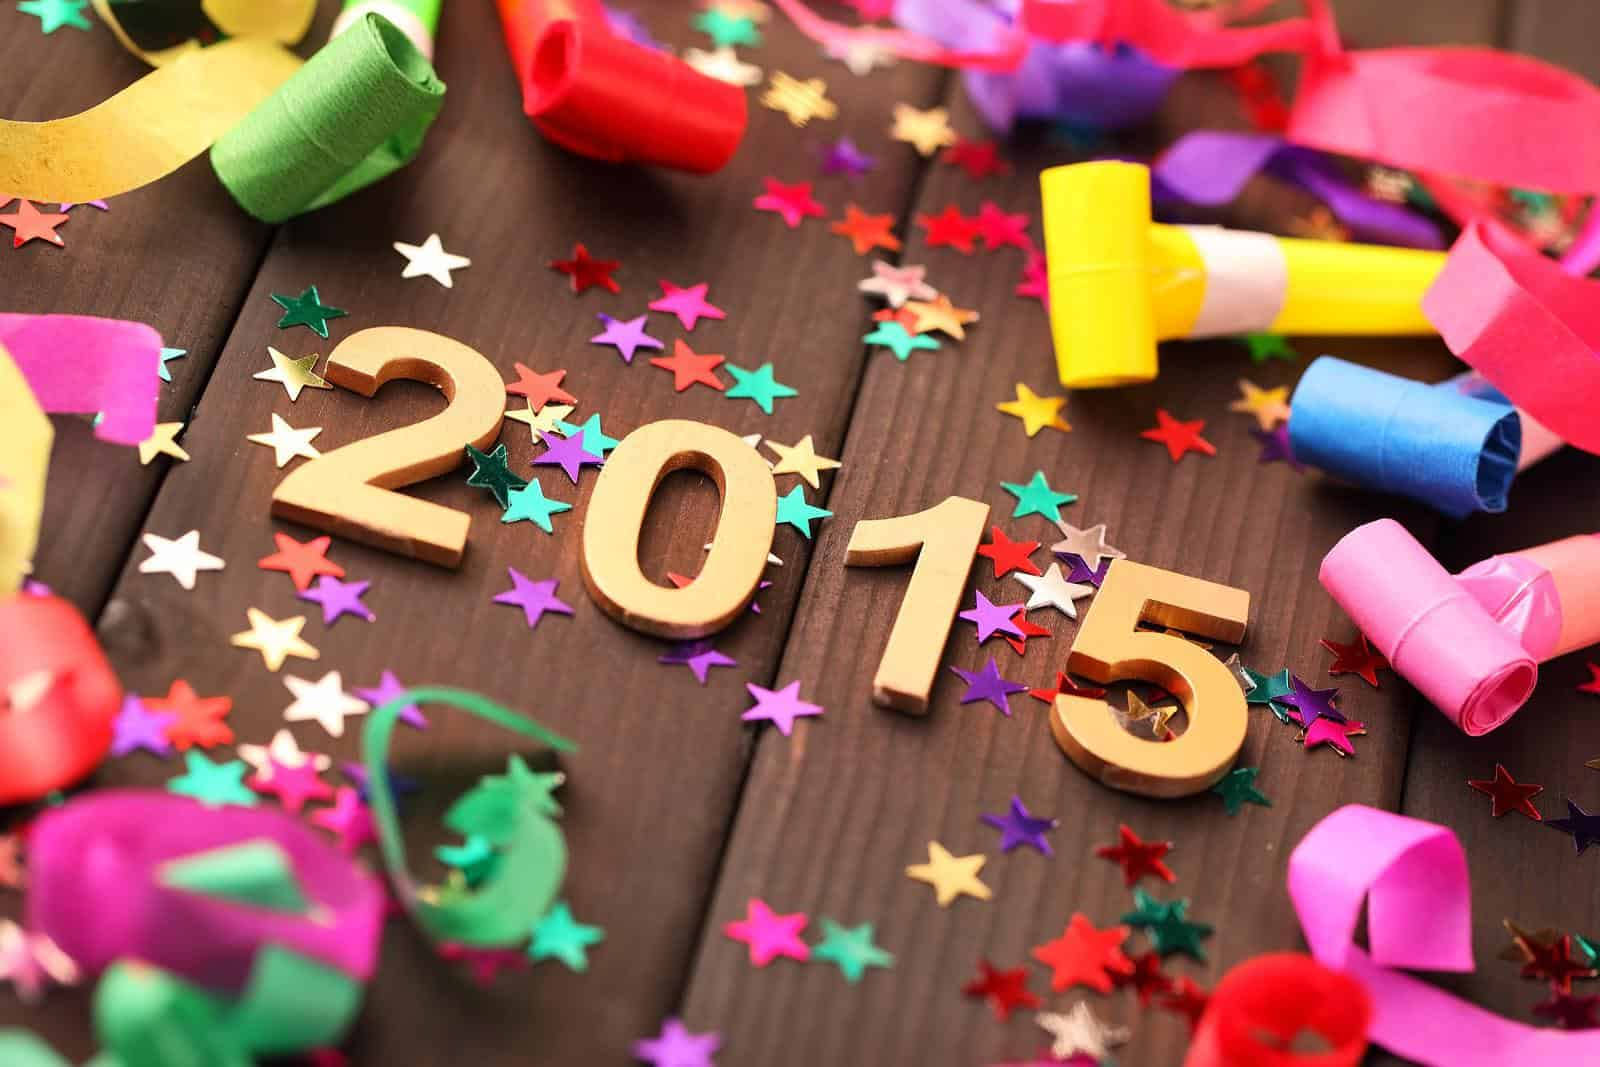 Happy-New-Year-2015-Wallpaper-3D-3